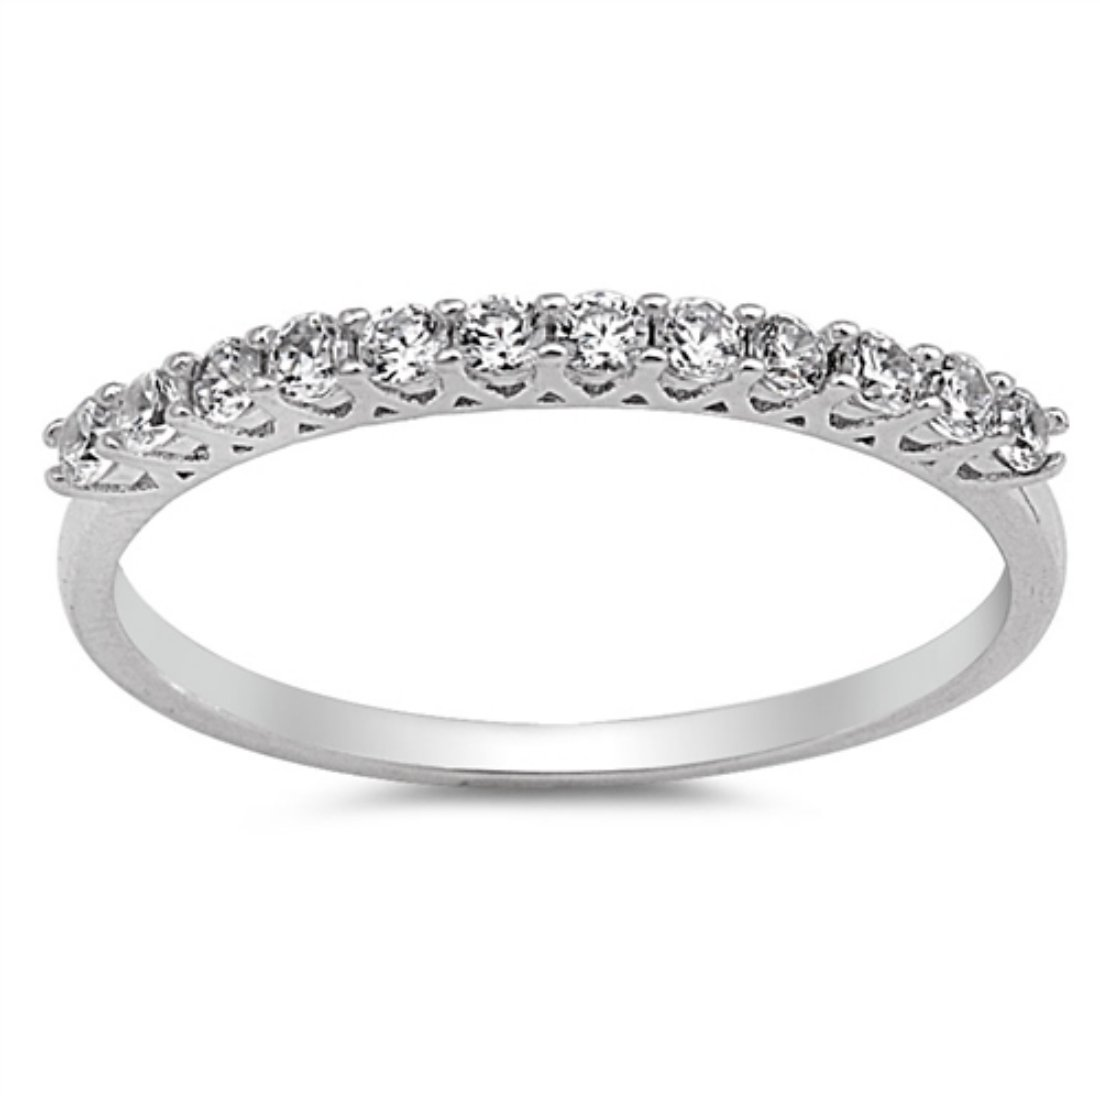 1mm Half Eternity Band Ring Round Cubic Zirconia 925 Sterling Silver 5-10